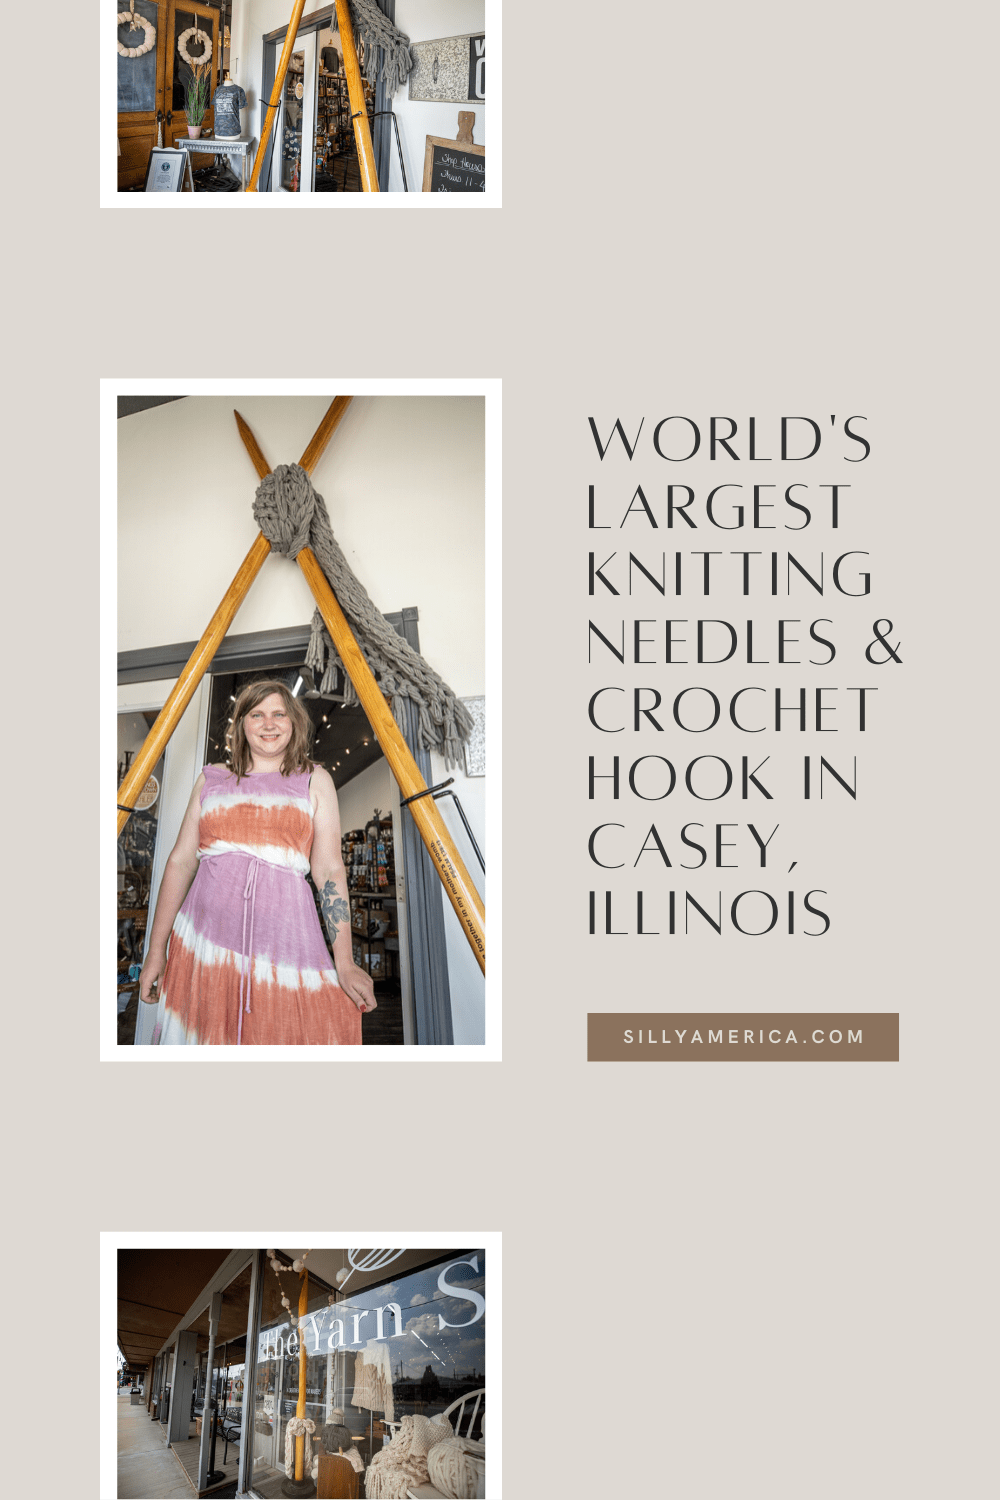 These roadside attractions might cause you to knit your eyebrows in confusion. But let me spin a yarn about the (former) World's Largest Knitting Needles and Crochet Hook in Casey, Illinois. Visit these big things on a road trip to Casey, Illinois or your weekend getaway in town. #IllinoisRoadsideAttractions #IllinoisRoadsideAttraction #RoadsideAttractions #RoadsideAttraction #RoadTrip #IllinoisRoadTrip #IllinoisWeekendGetaways #IllinoisWithKids #IllinoisRoadTripTravel